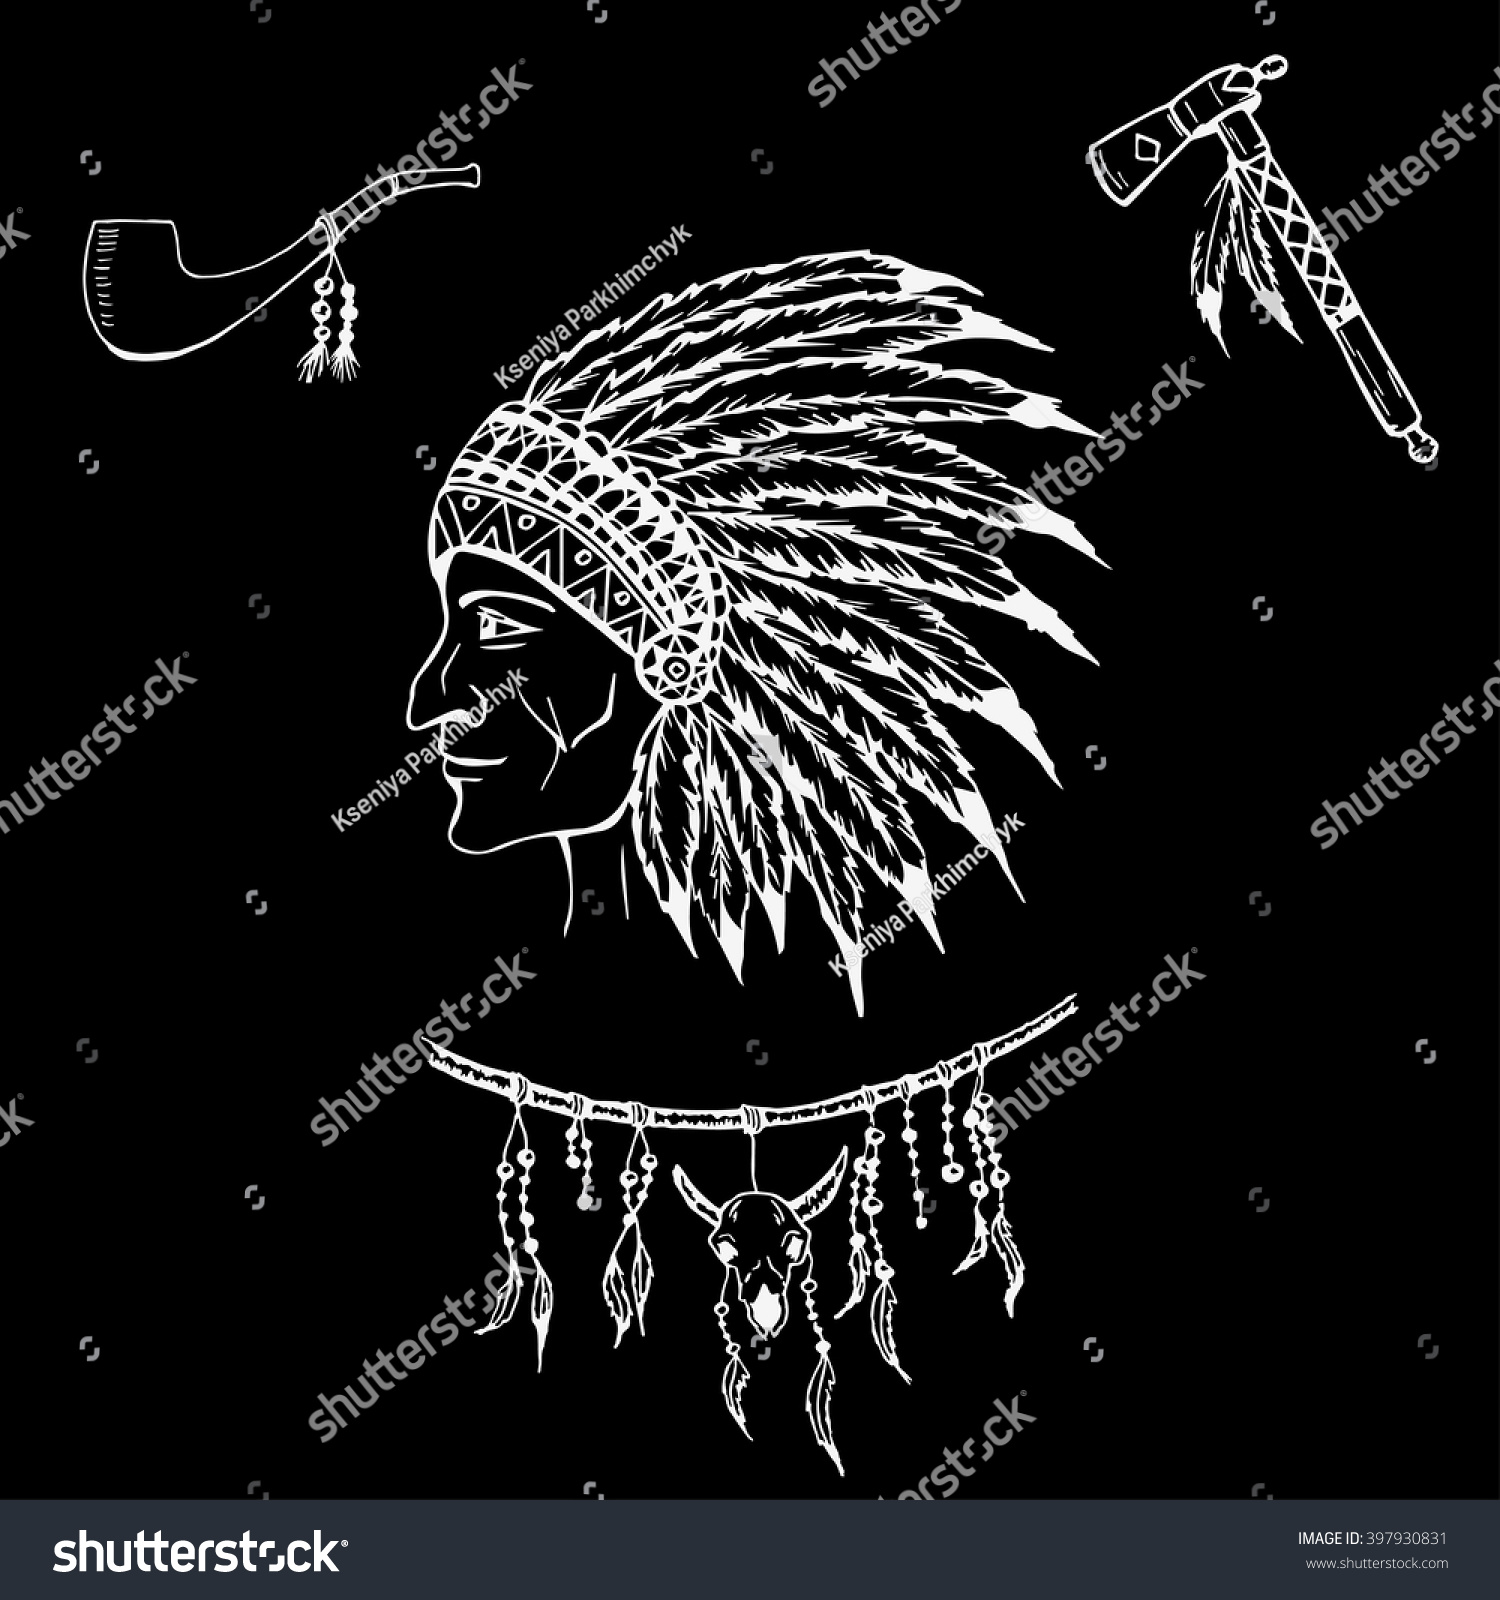 Eagle Man Drawing – images free download